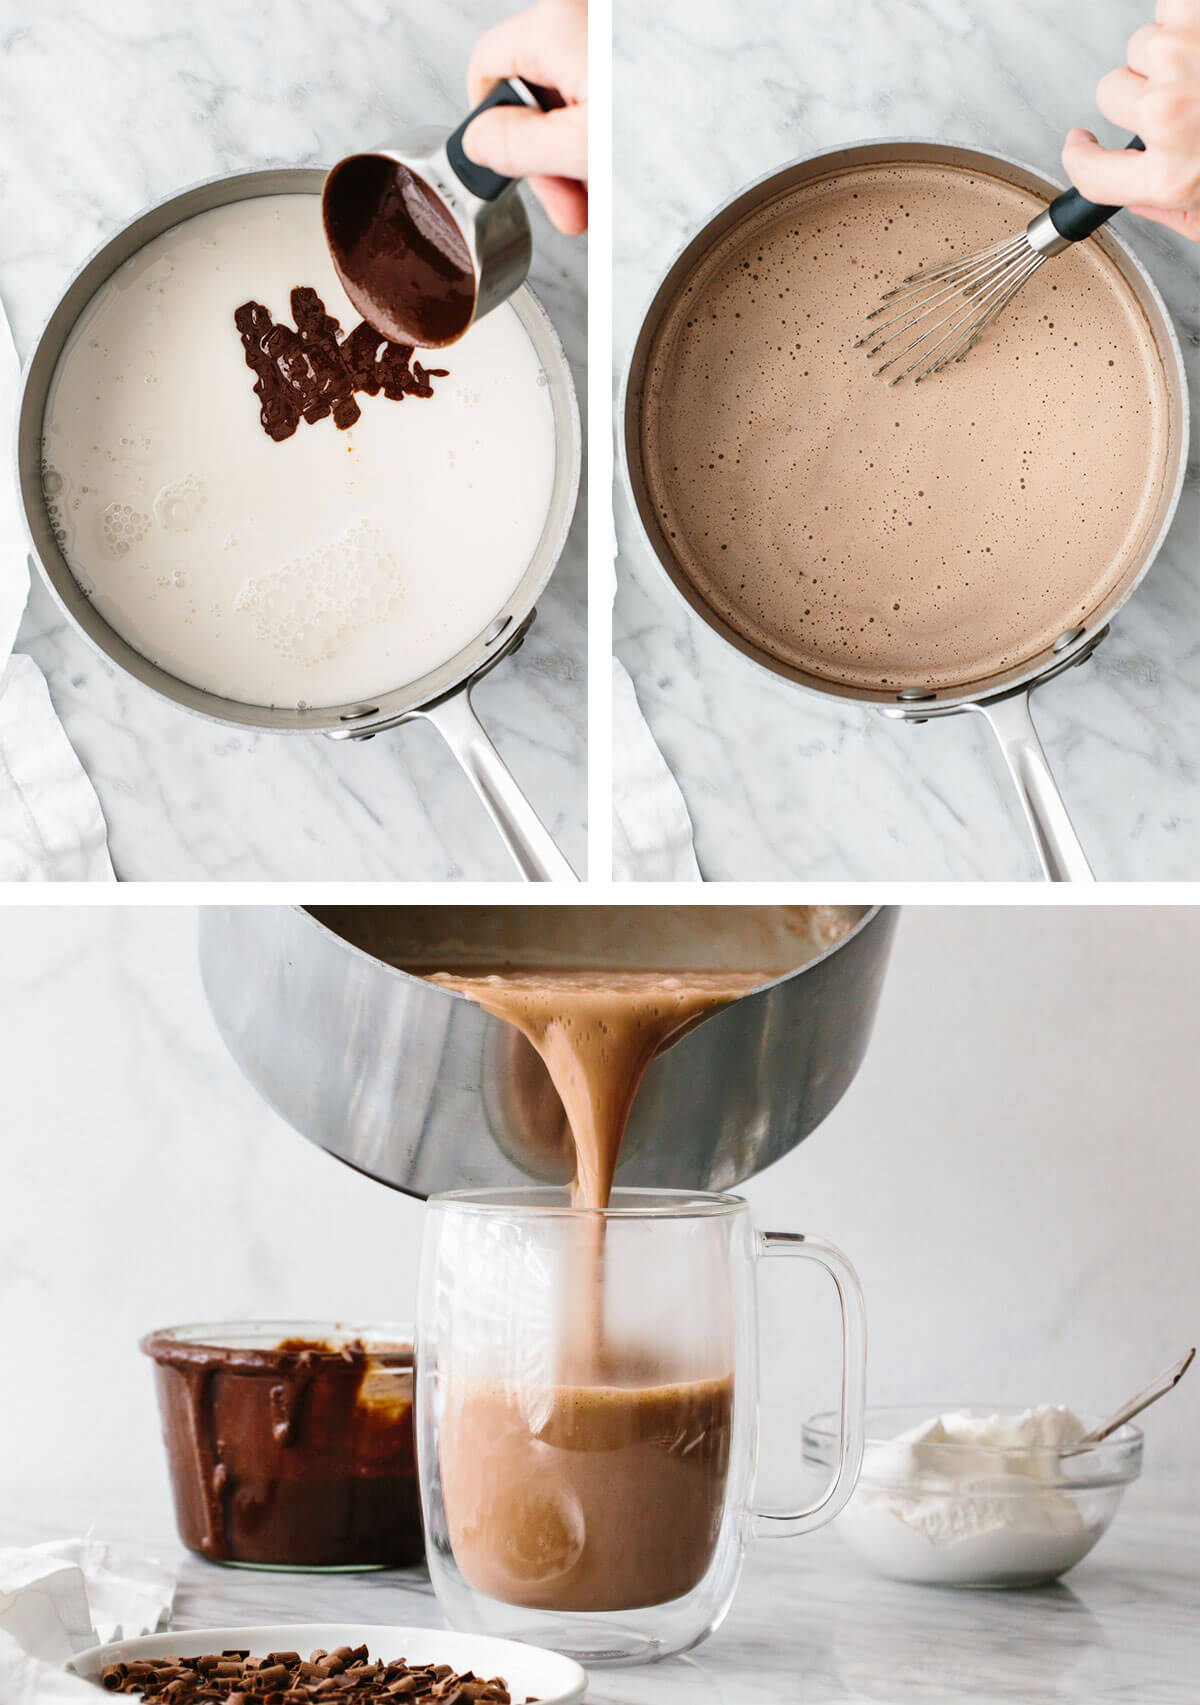 Making nutella hot chocolate in a sauce pan then pouring into a cup.